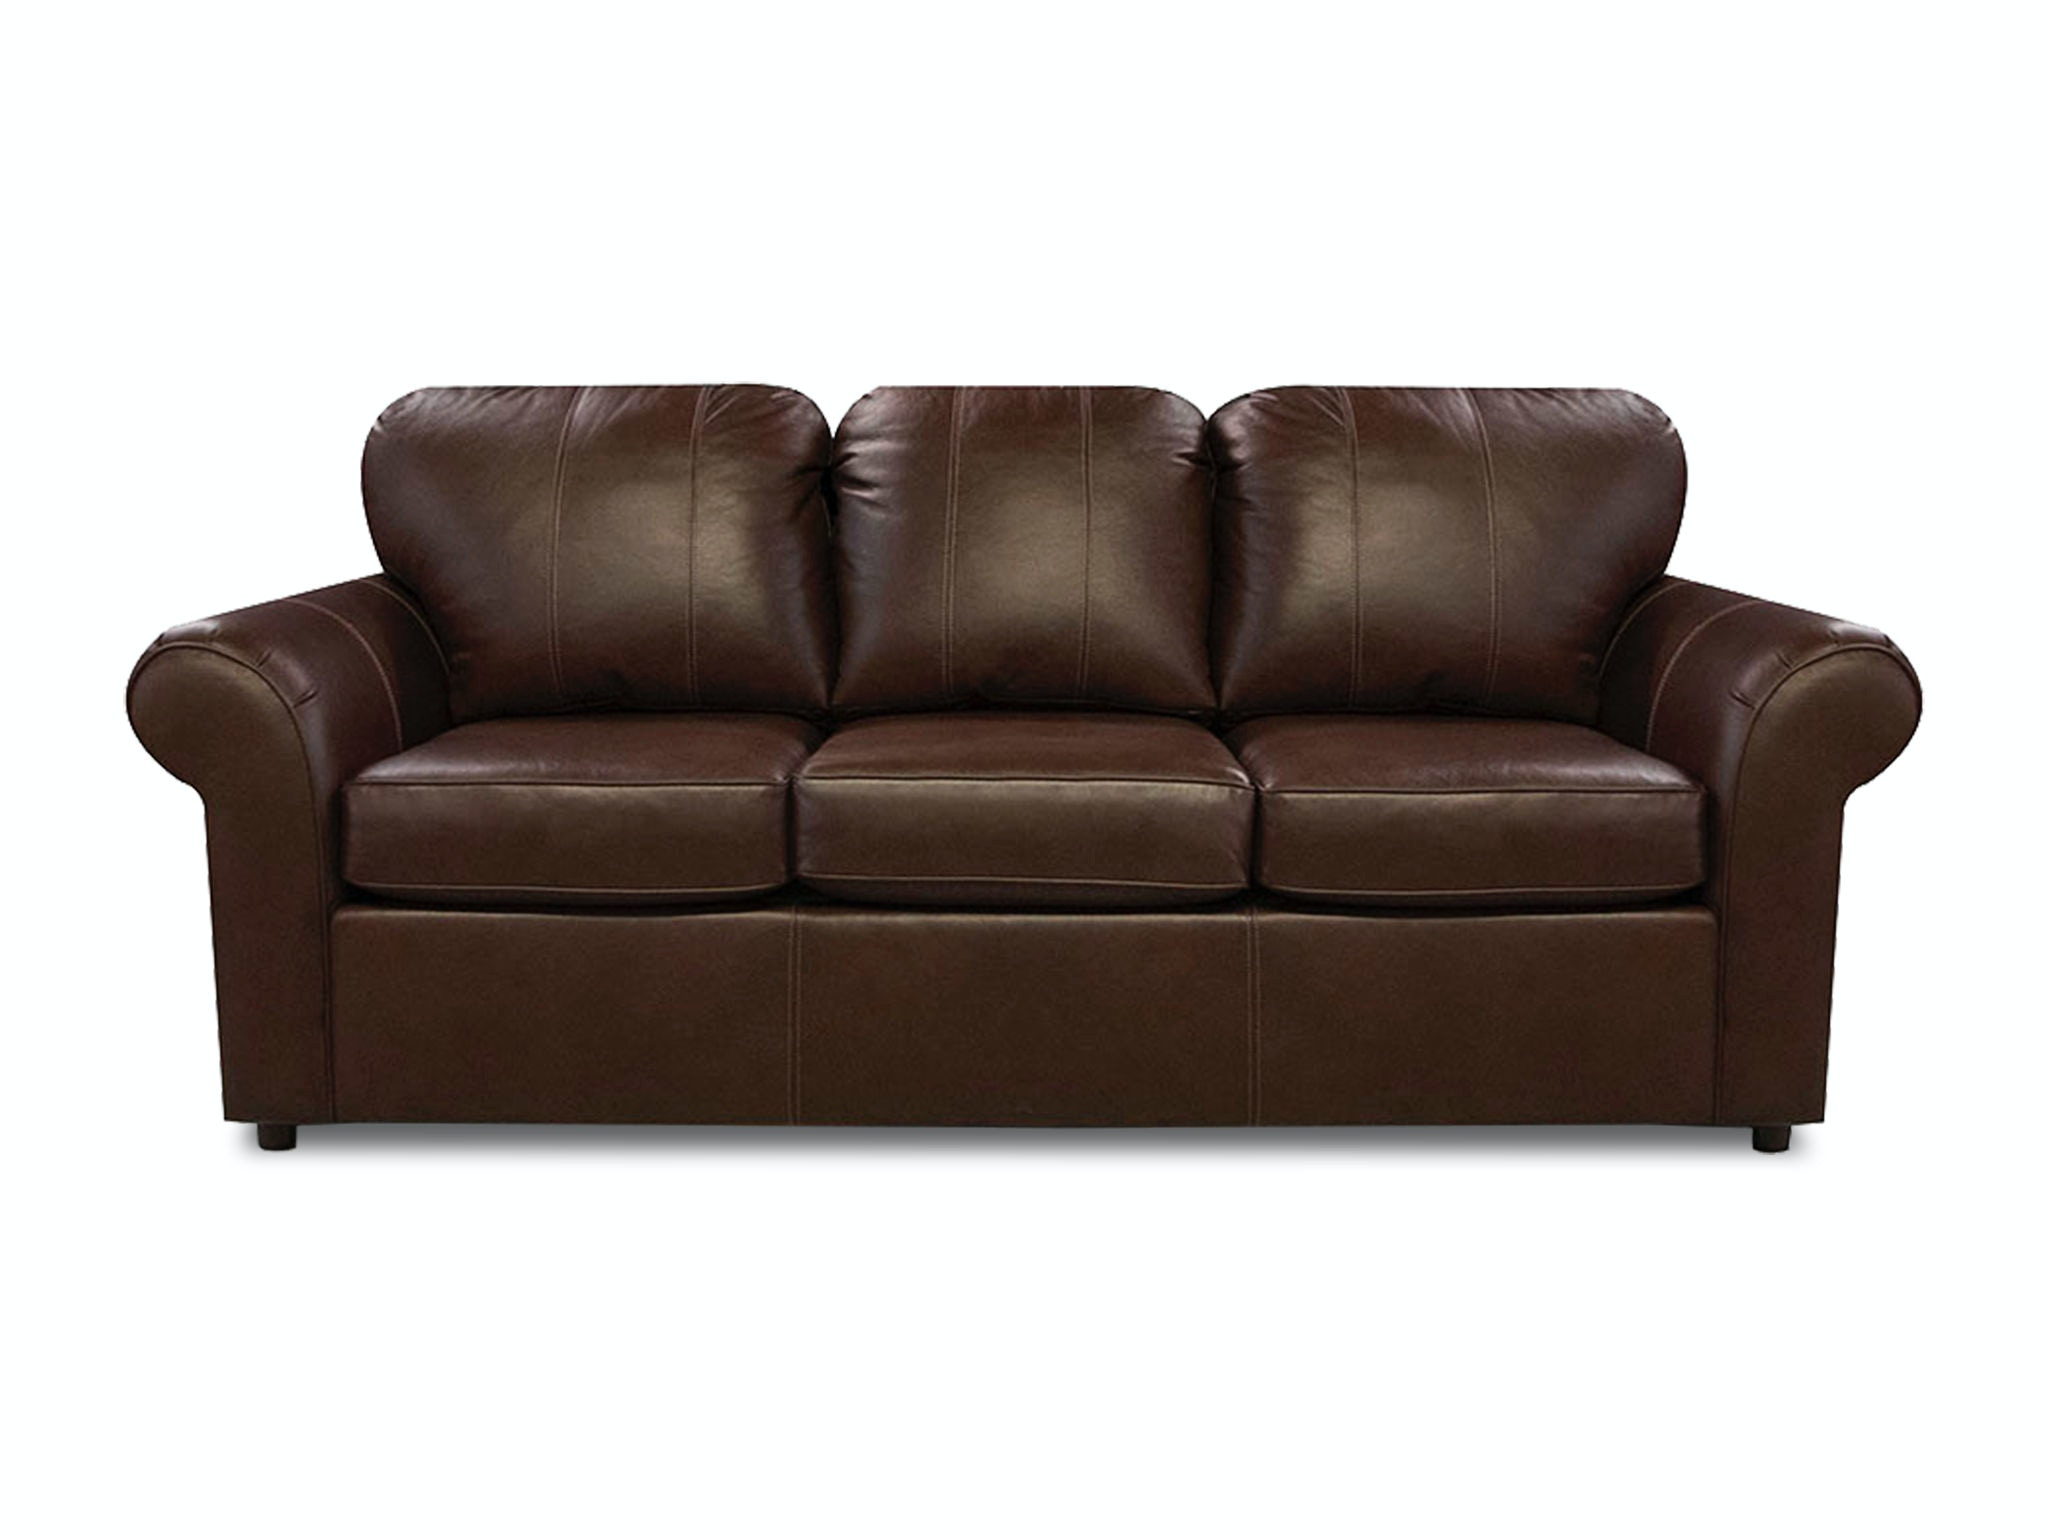 England Living Room Lachlan Leather Sofa 055850